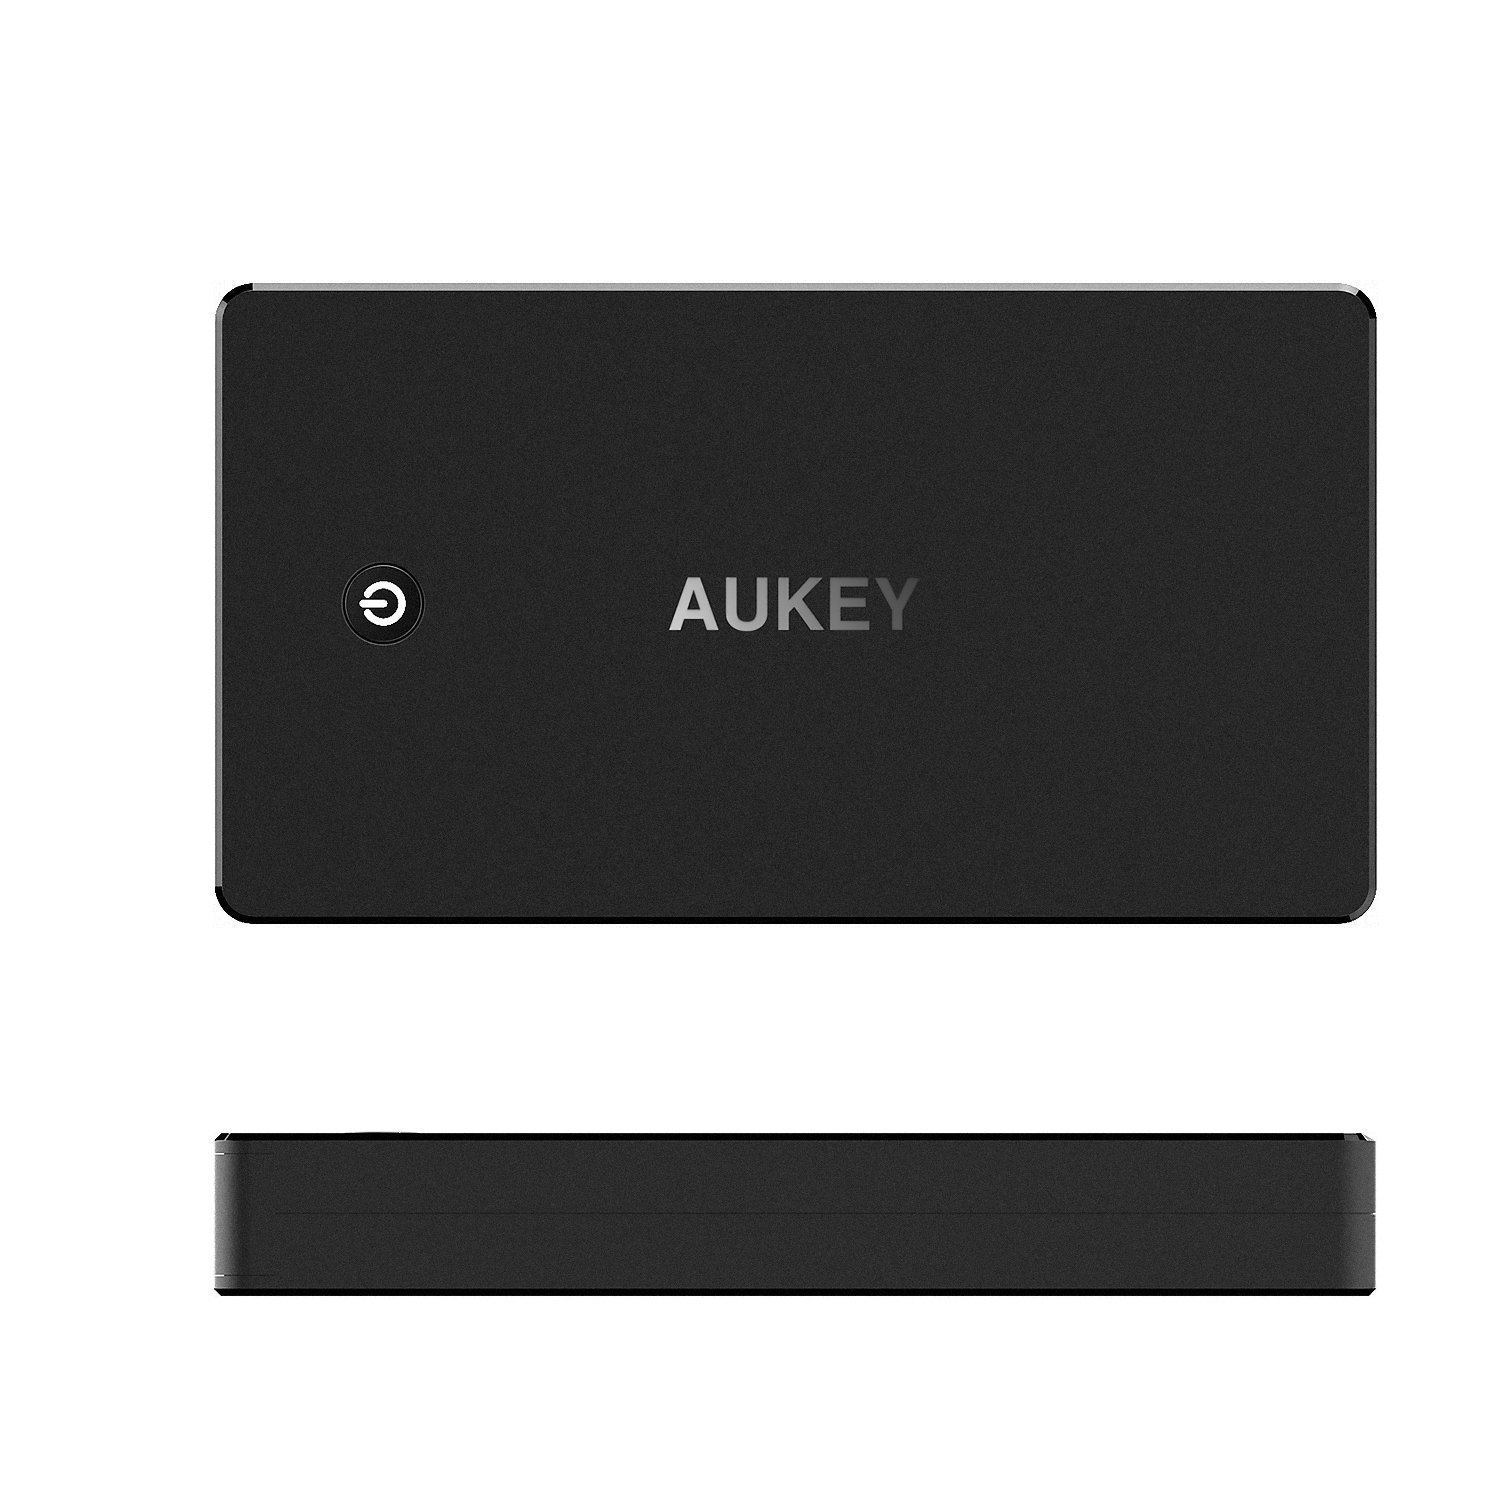 A.1 AUKEY Power Bank